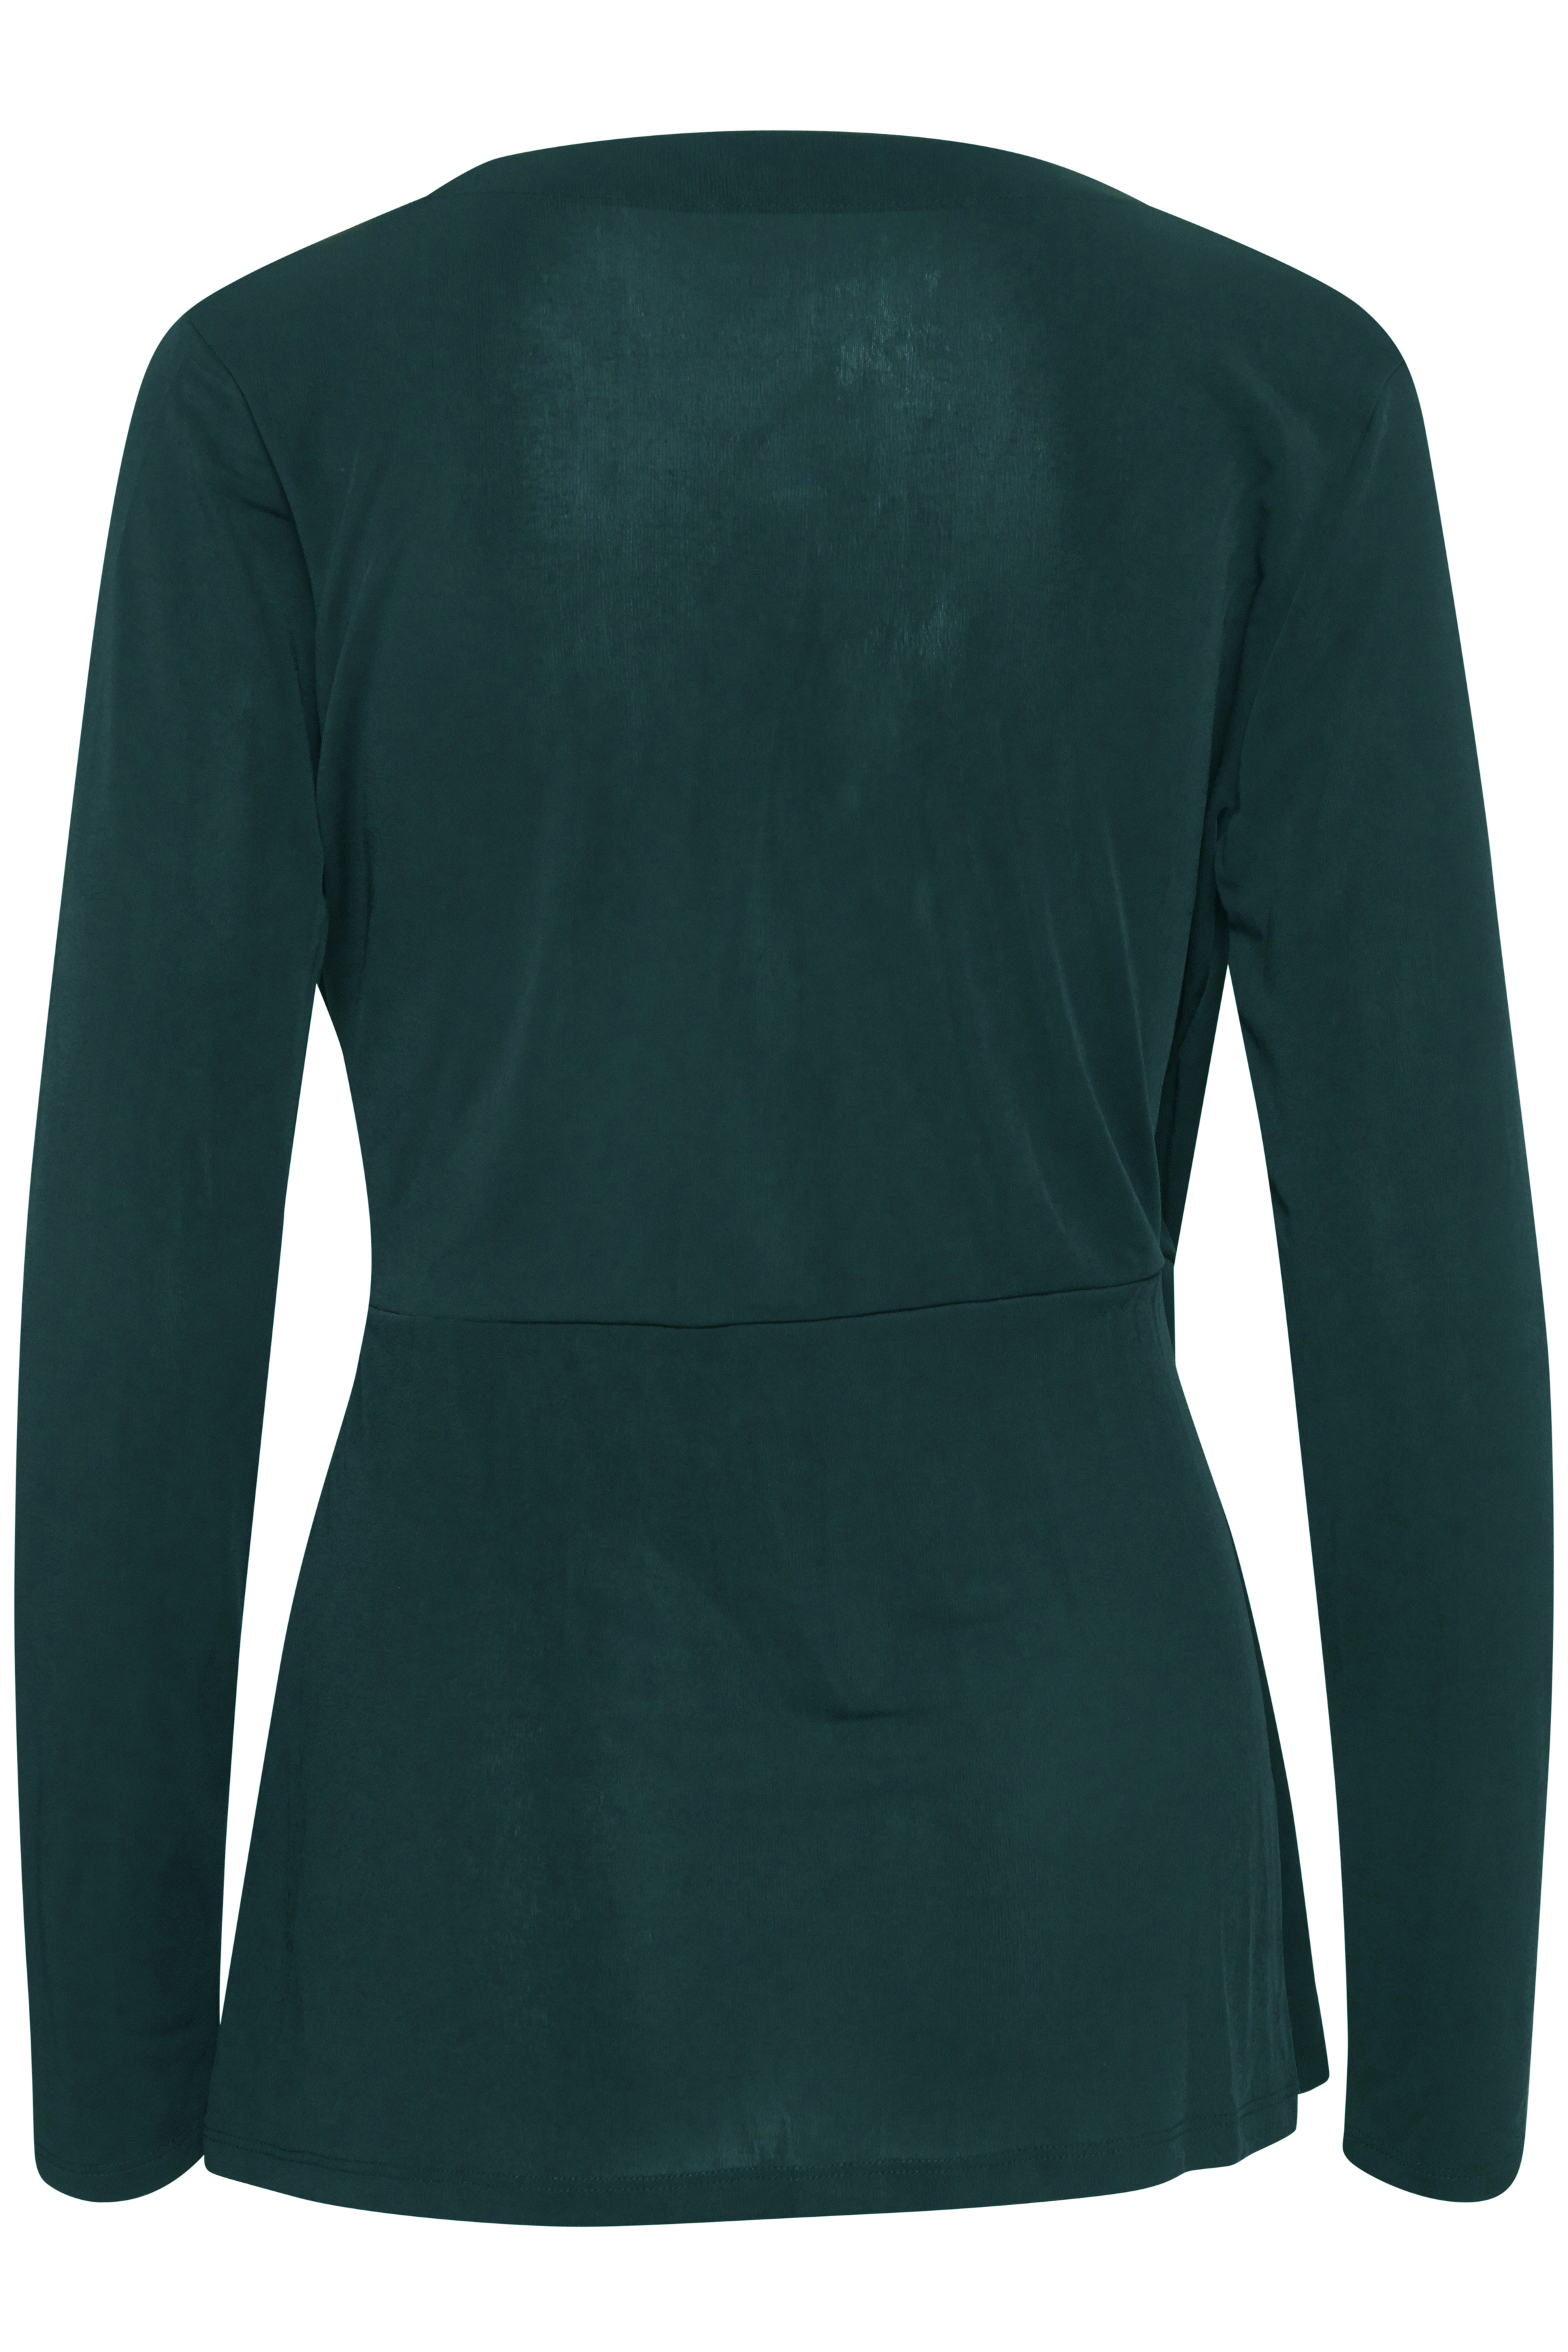 Majestic Green Long sleeved T-shirt from b.young – Buy Majestic Green Long sleeved T-shirt from size XS-XL here